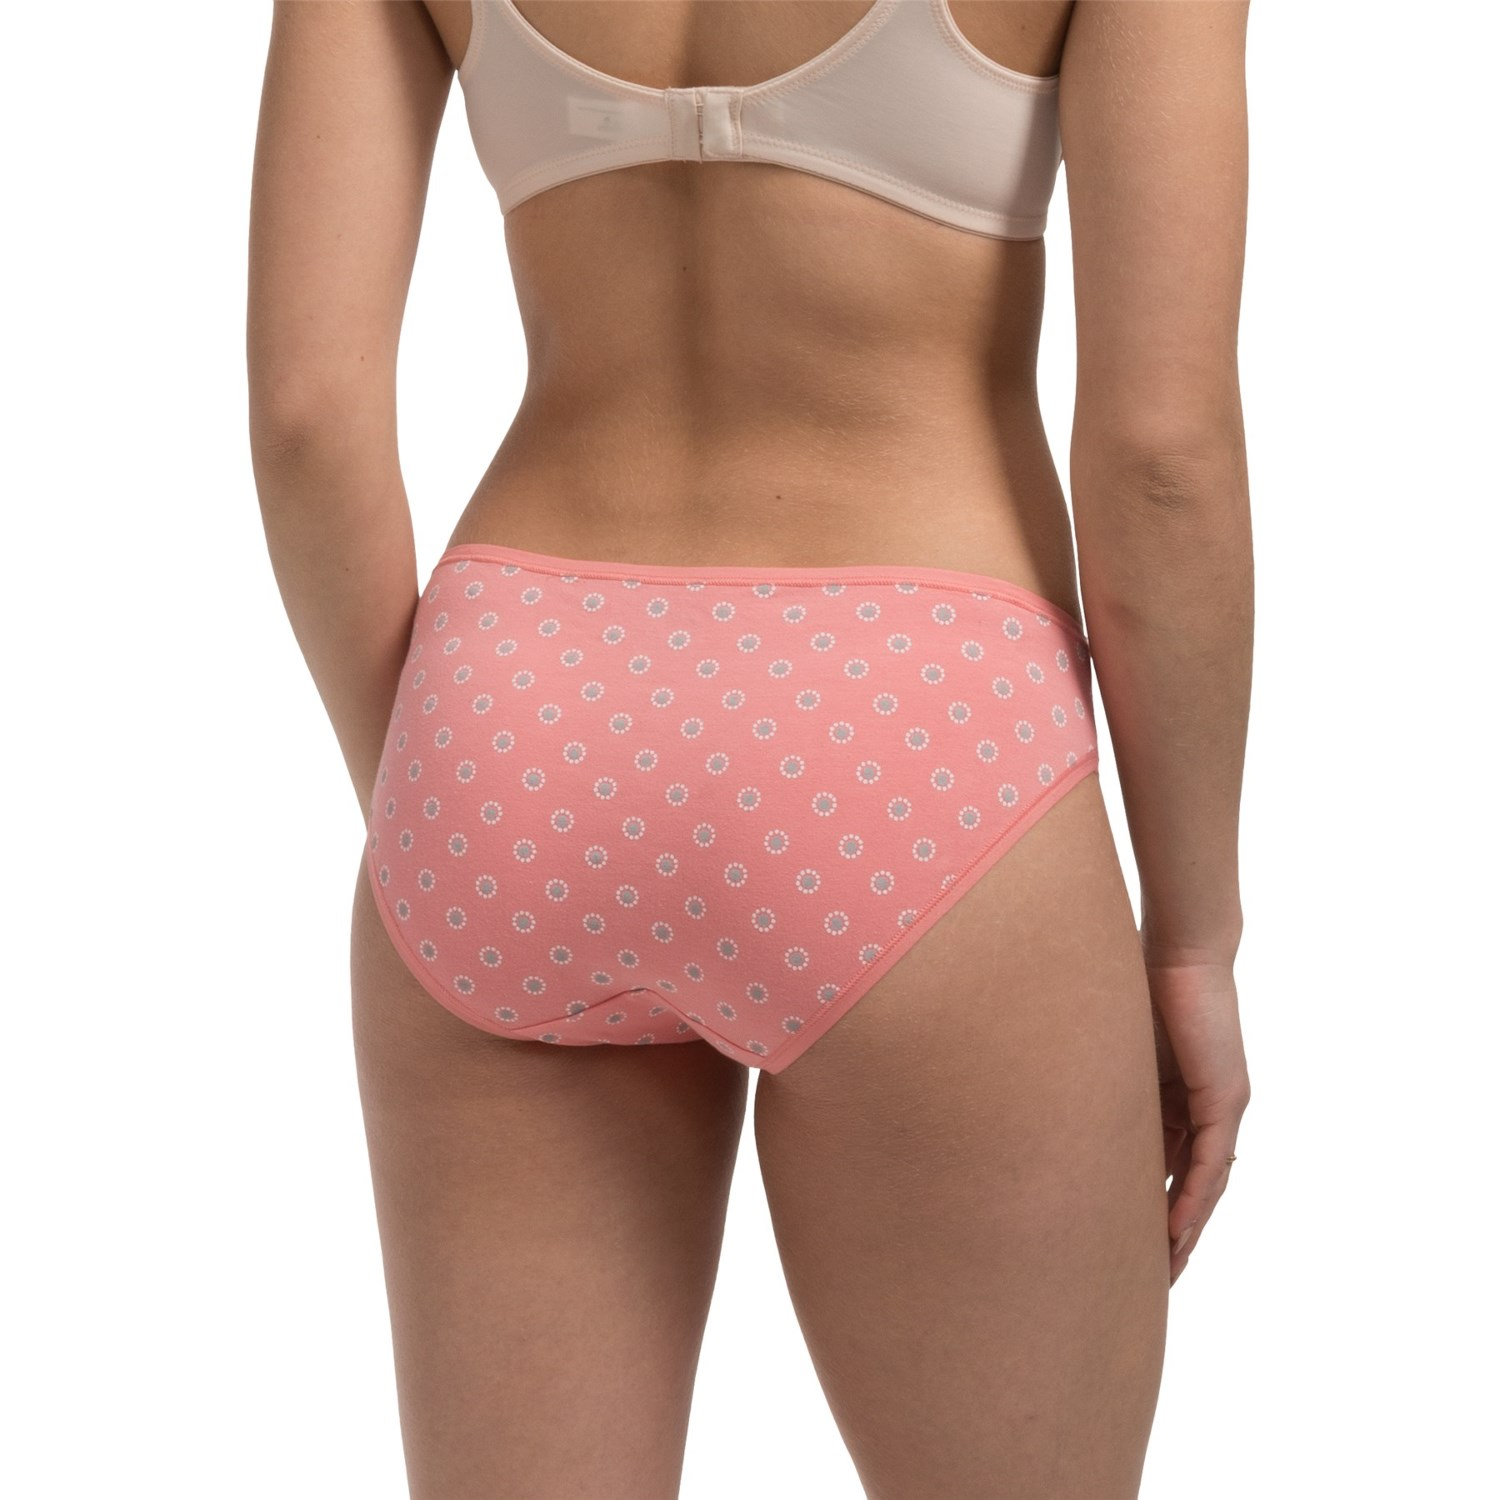 Cotton Panties For Women 81